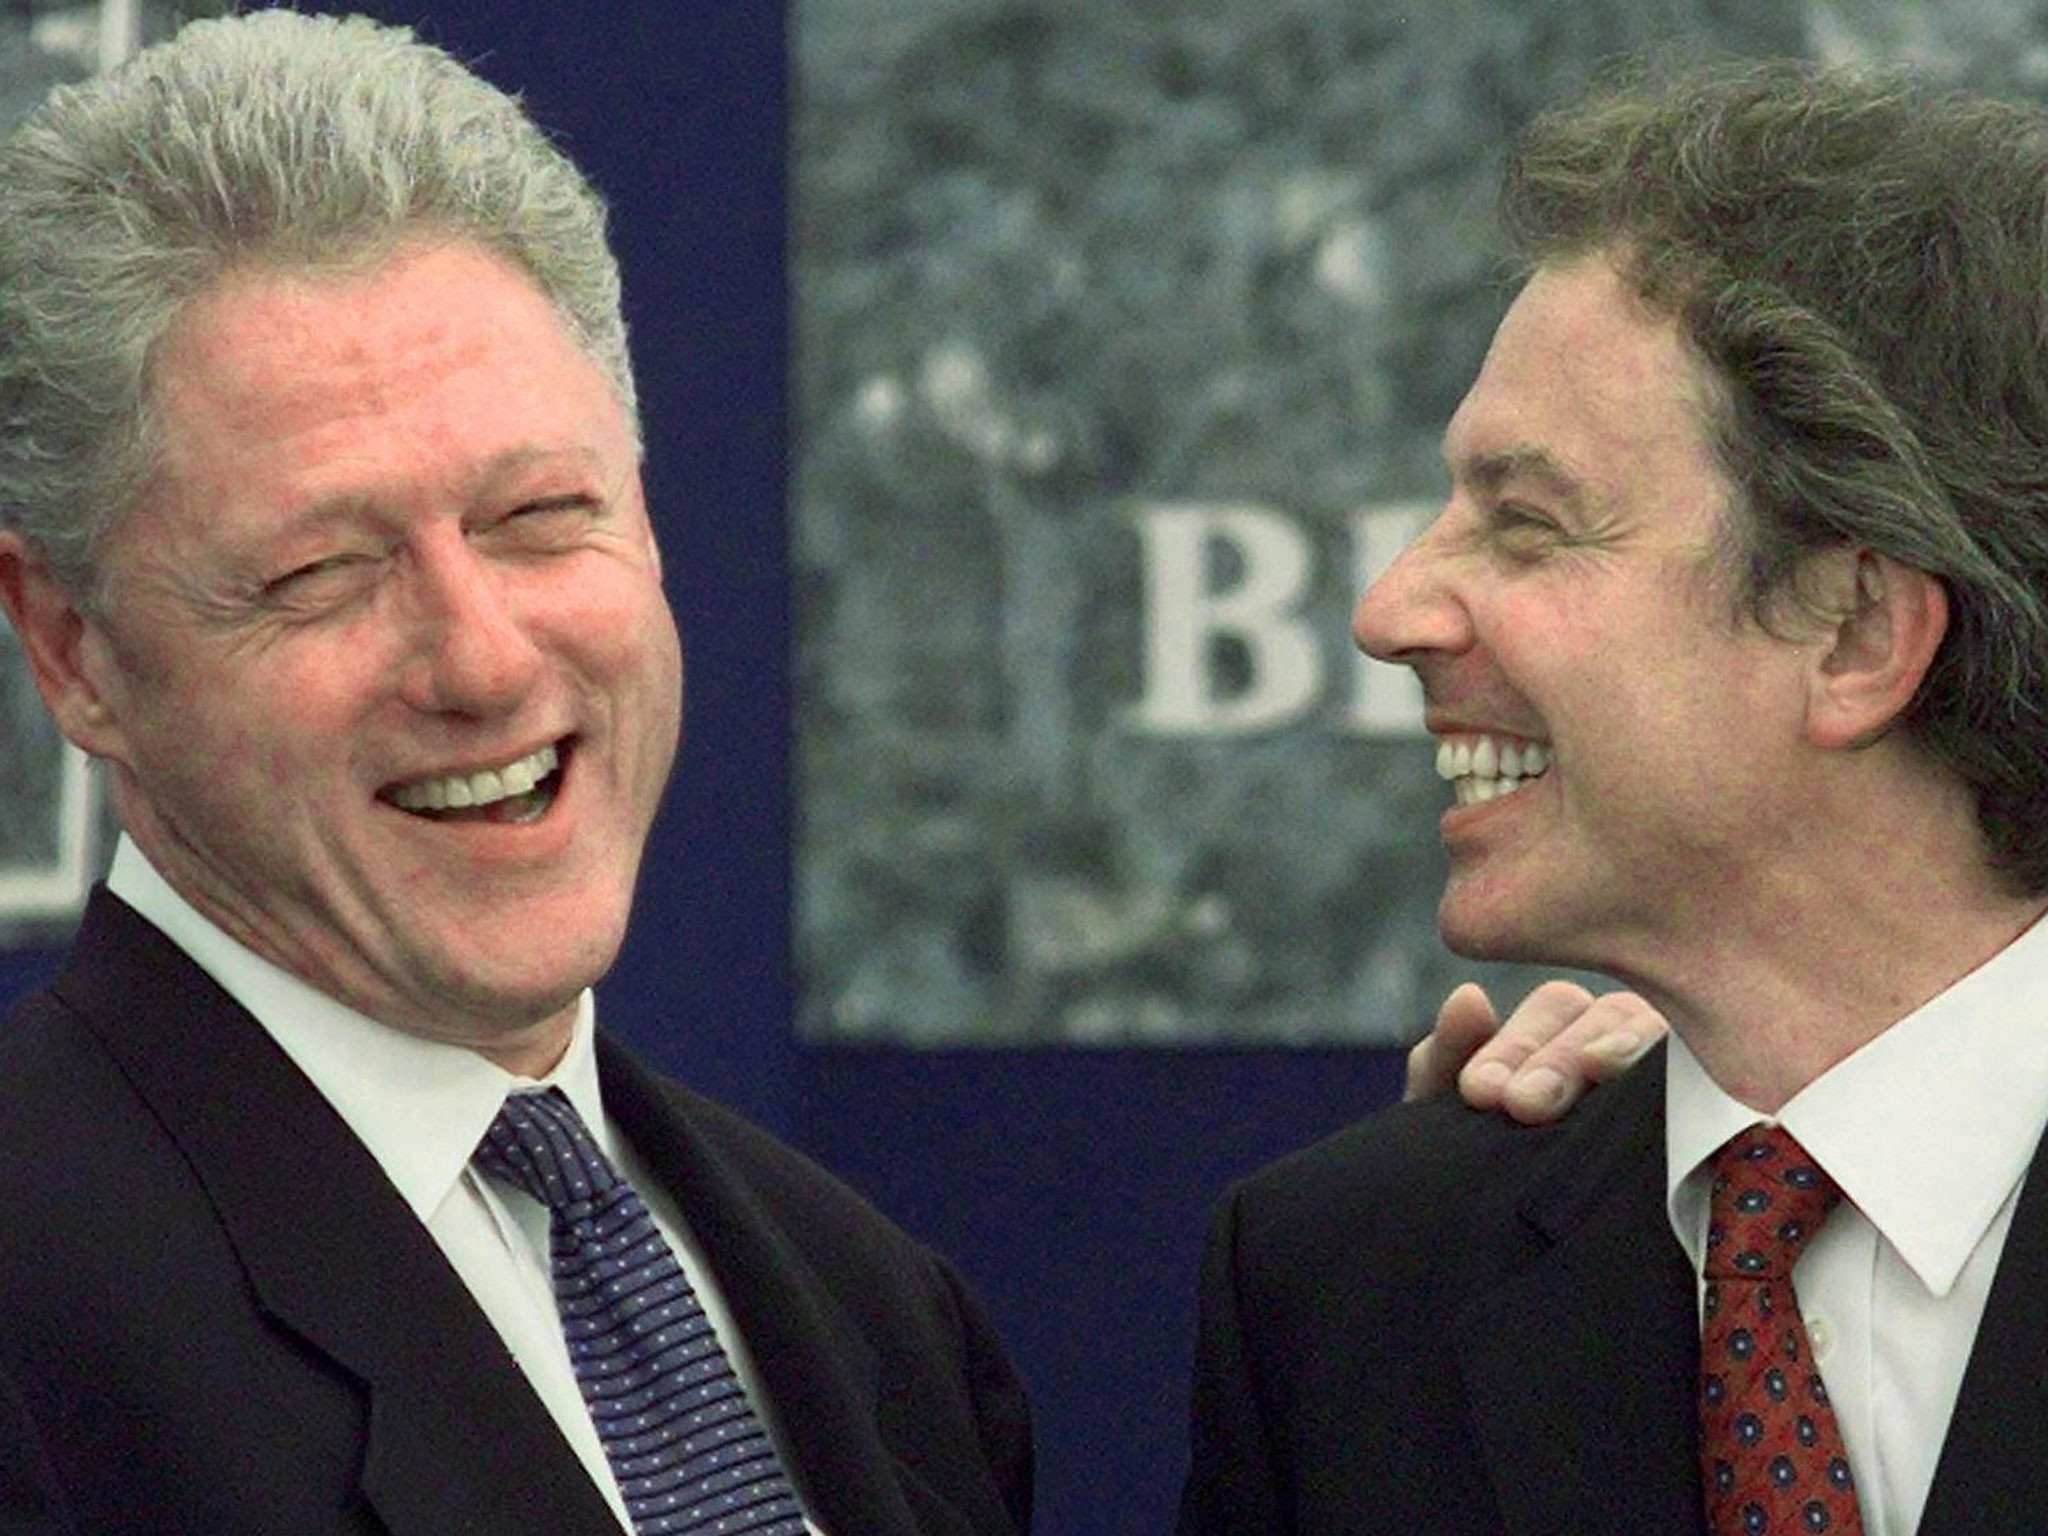 Tony Blair and Bill Clinton phone calls: Fake transcripts shared on social  media after declassified records released | The Independent